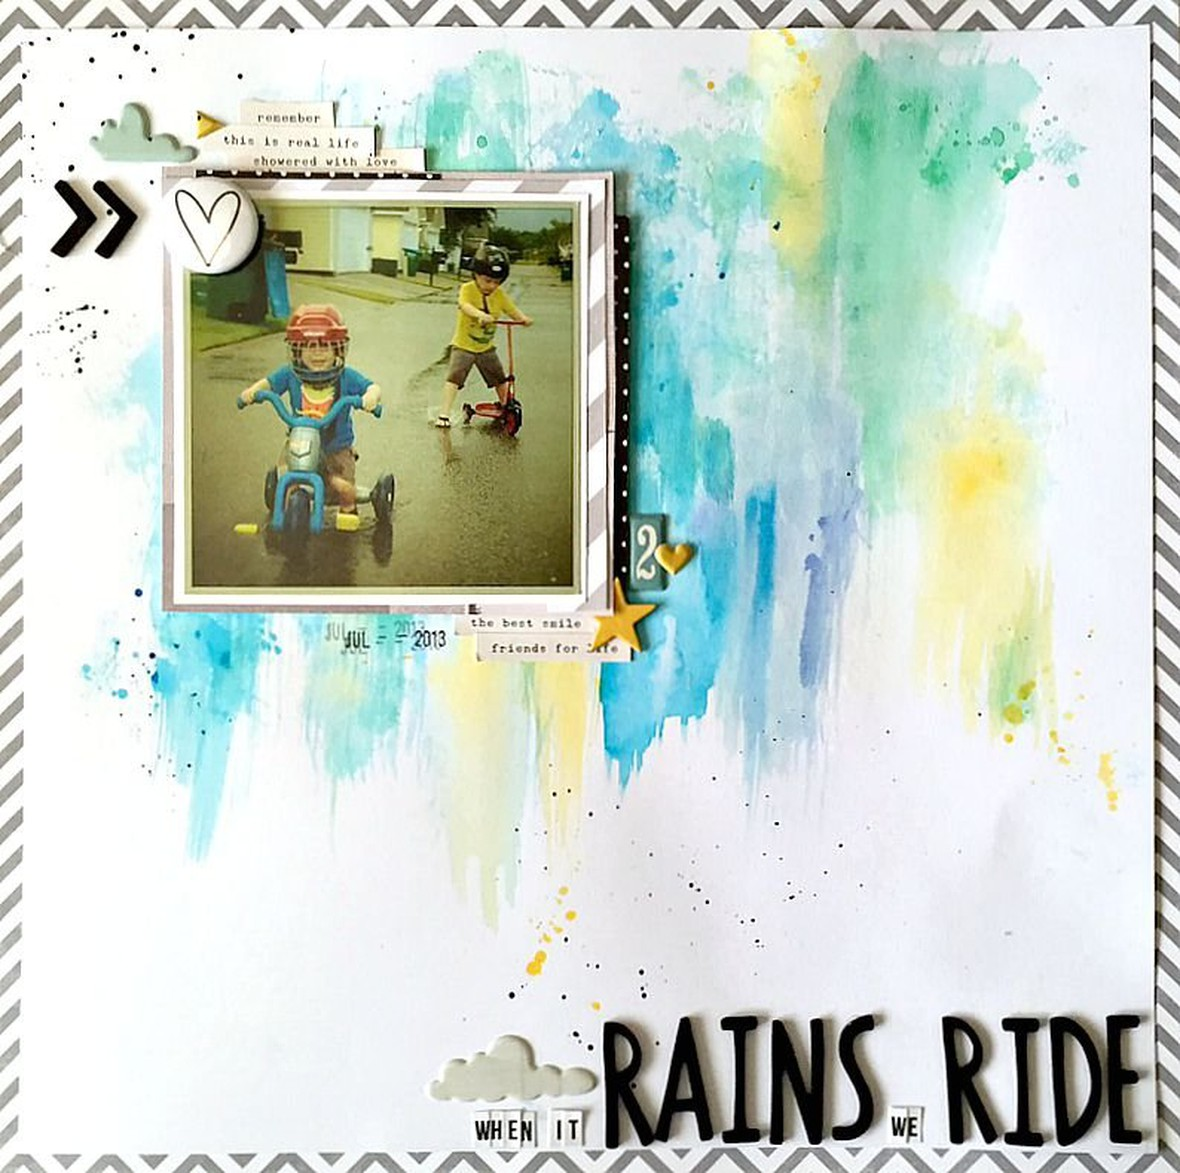 When it rains we ride layout   ls original